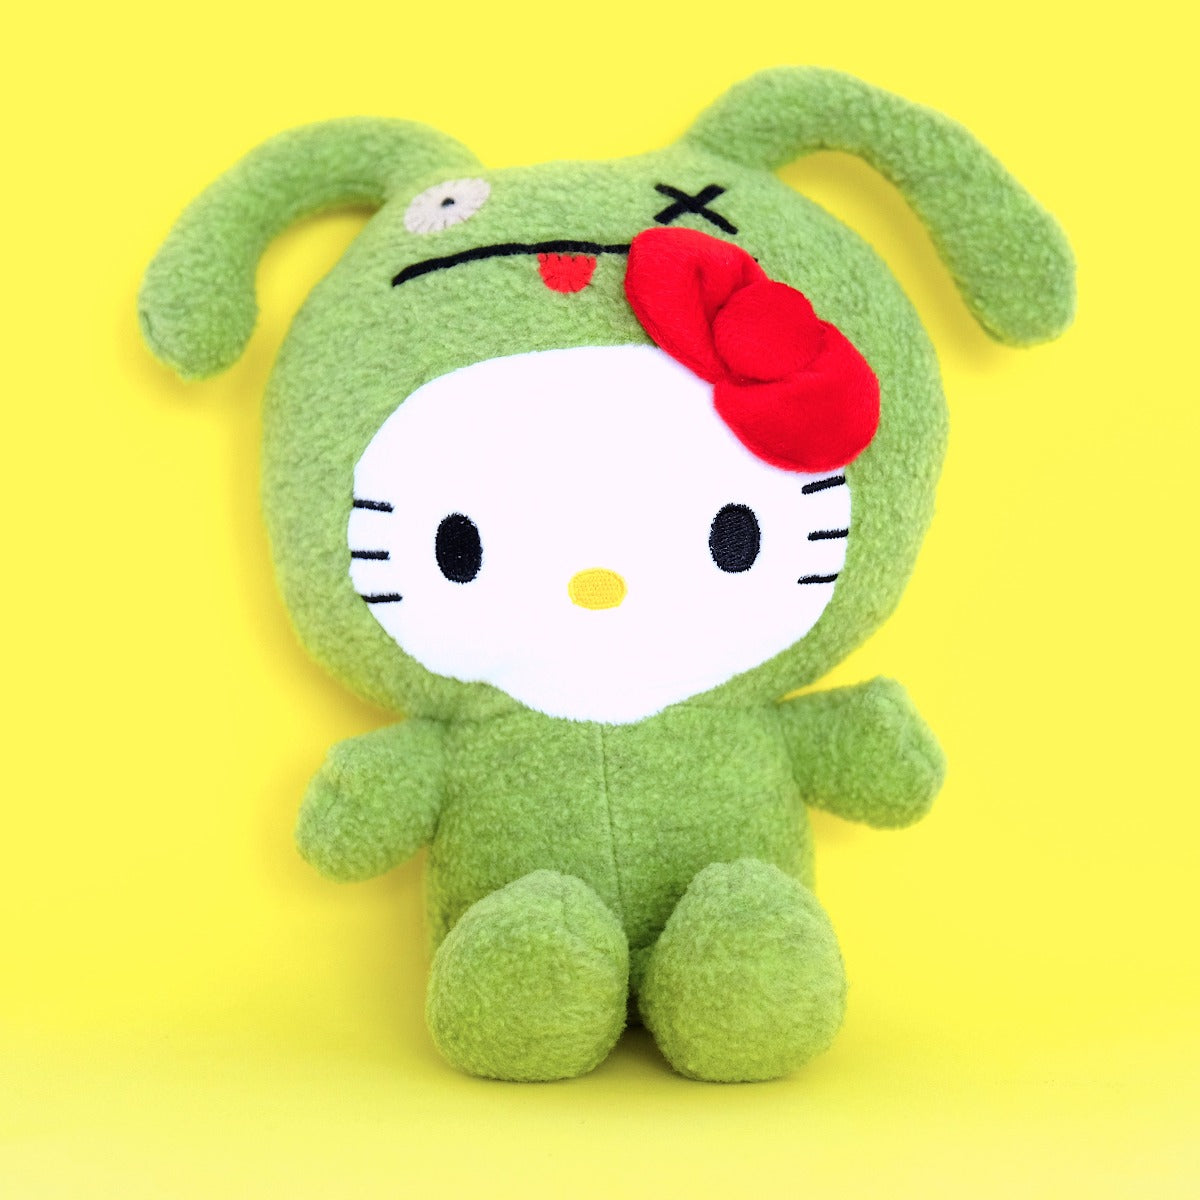 UGLYDOLL x Hello Kitty: OX